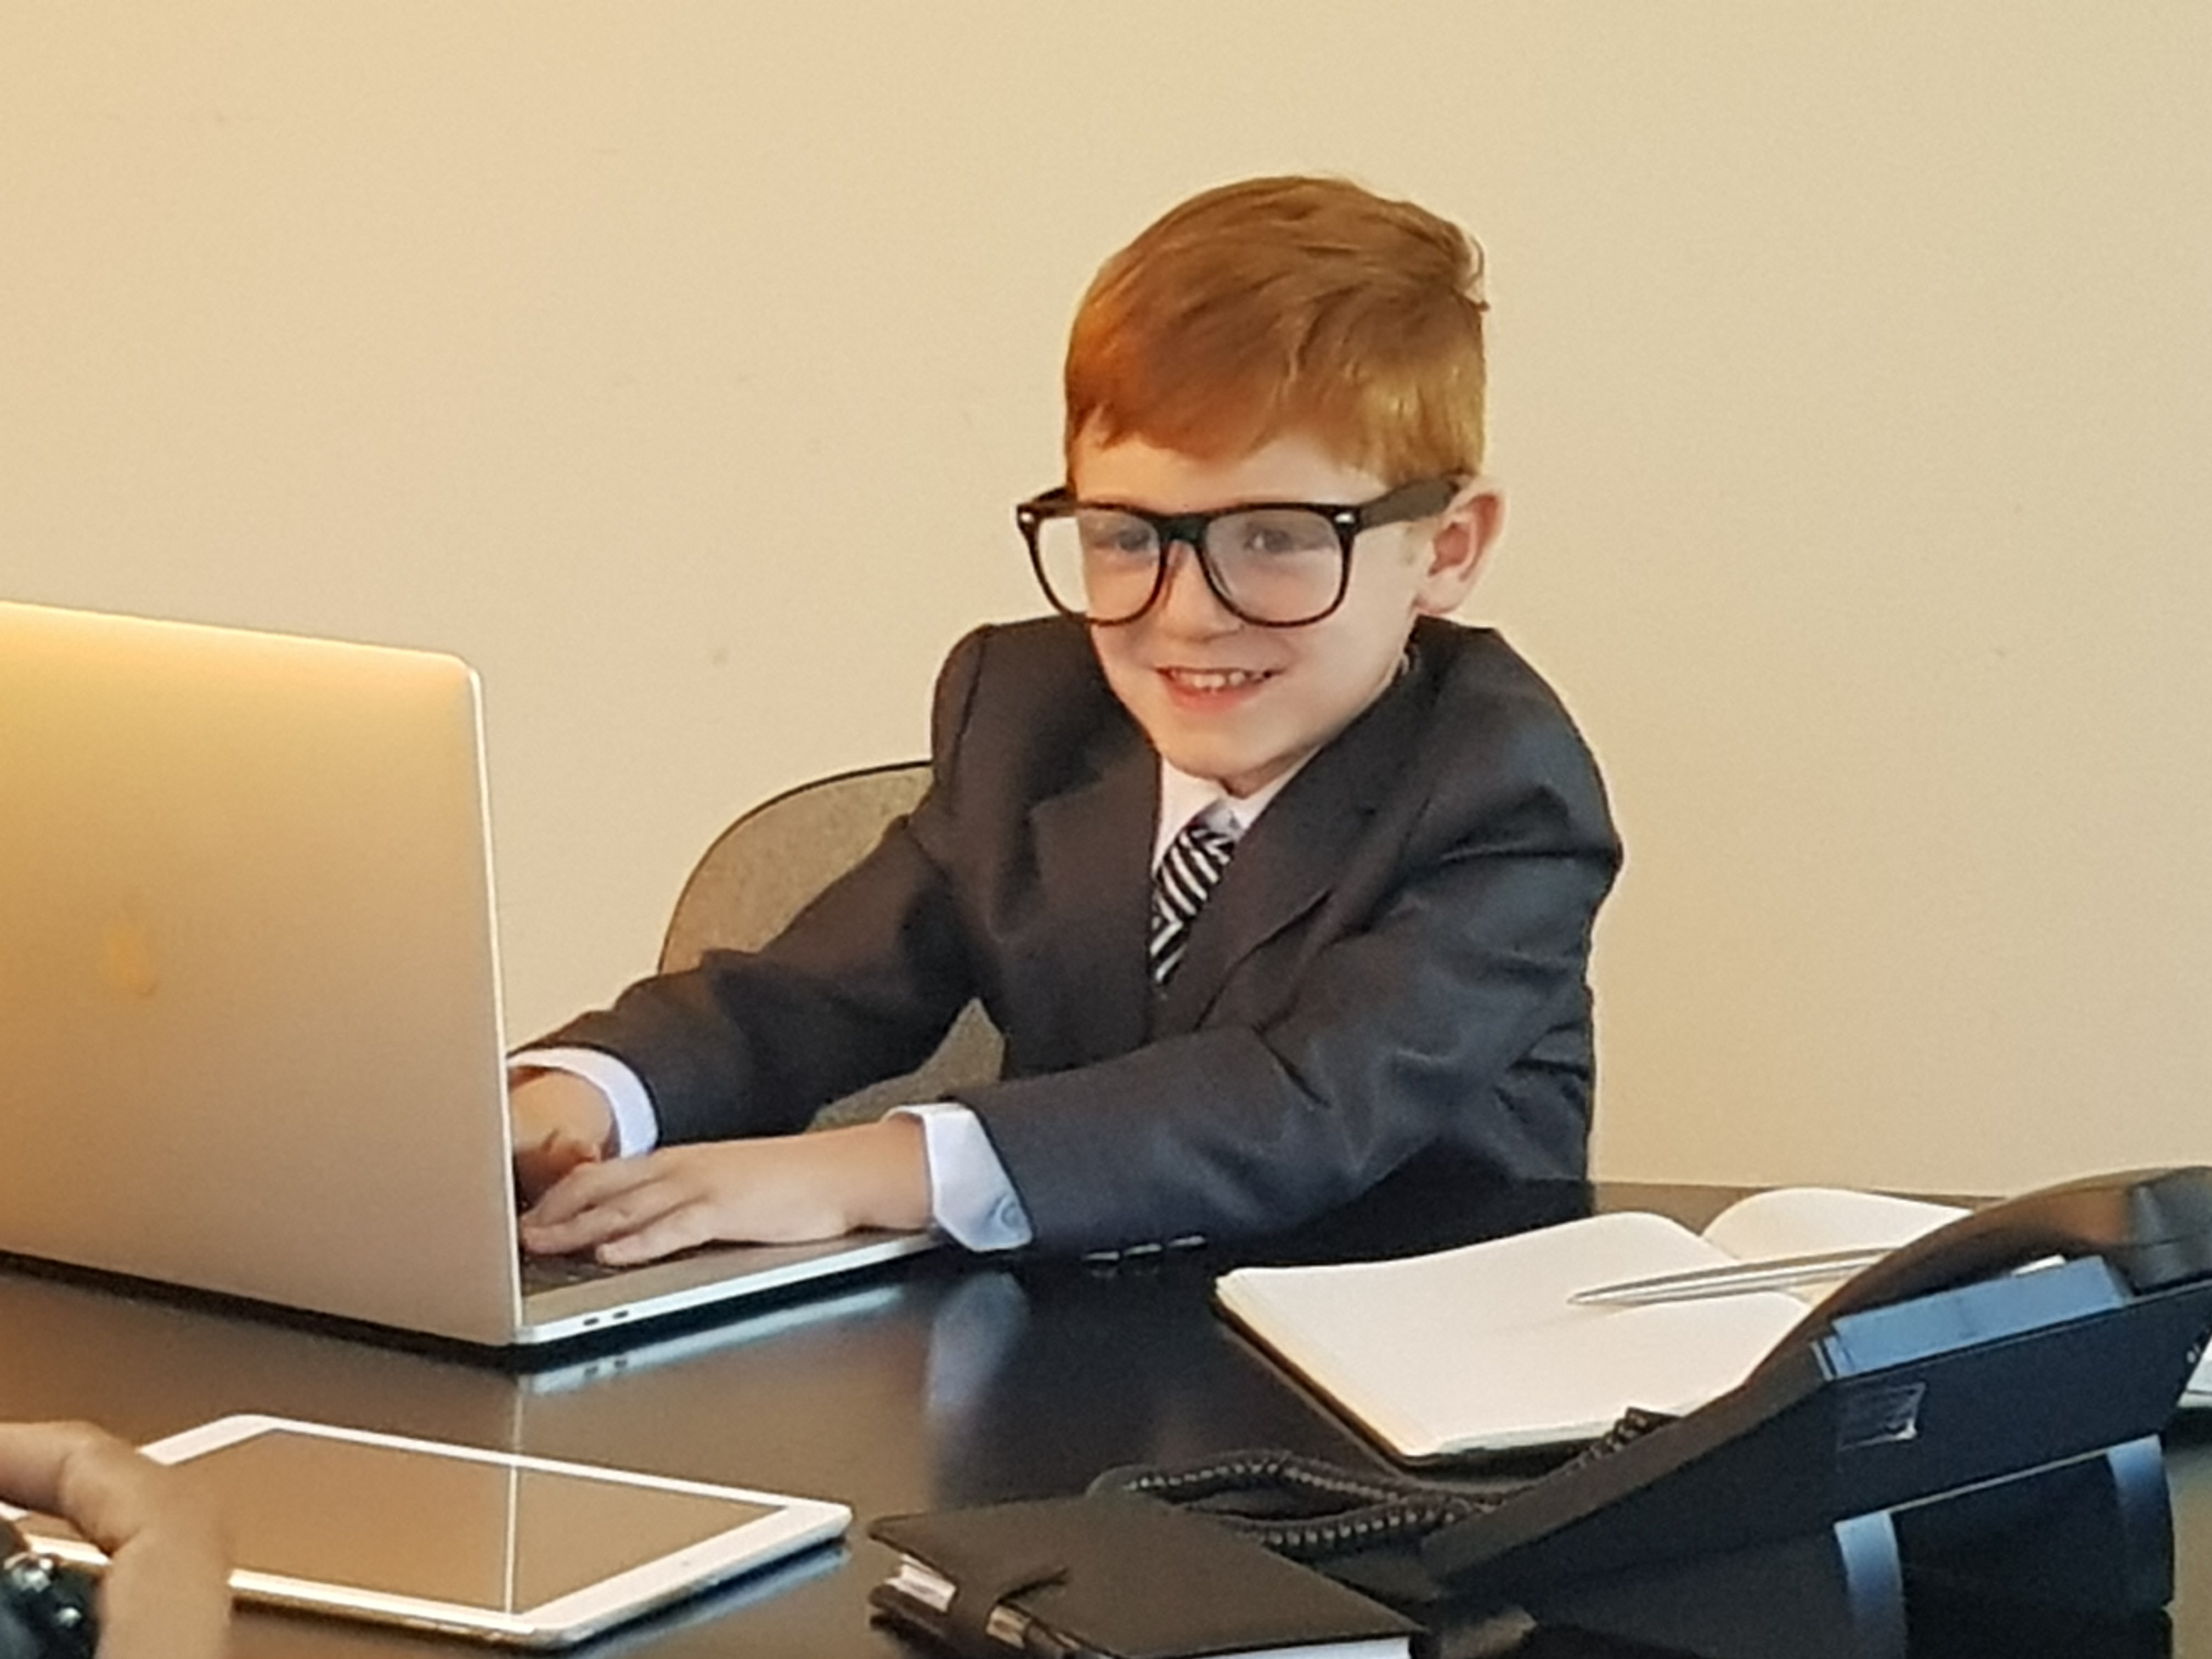 Leo present day- Working on our website!